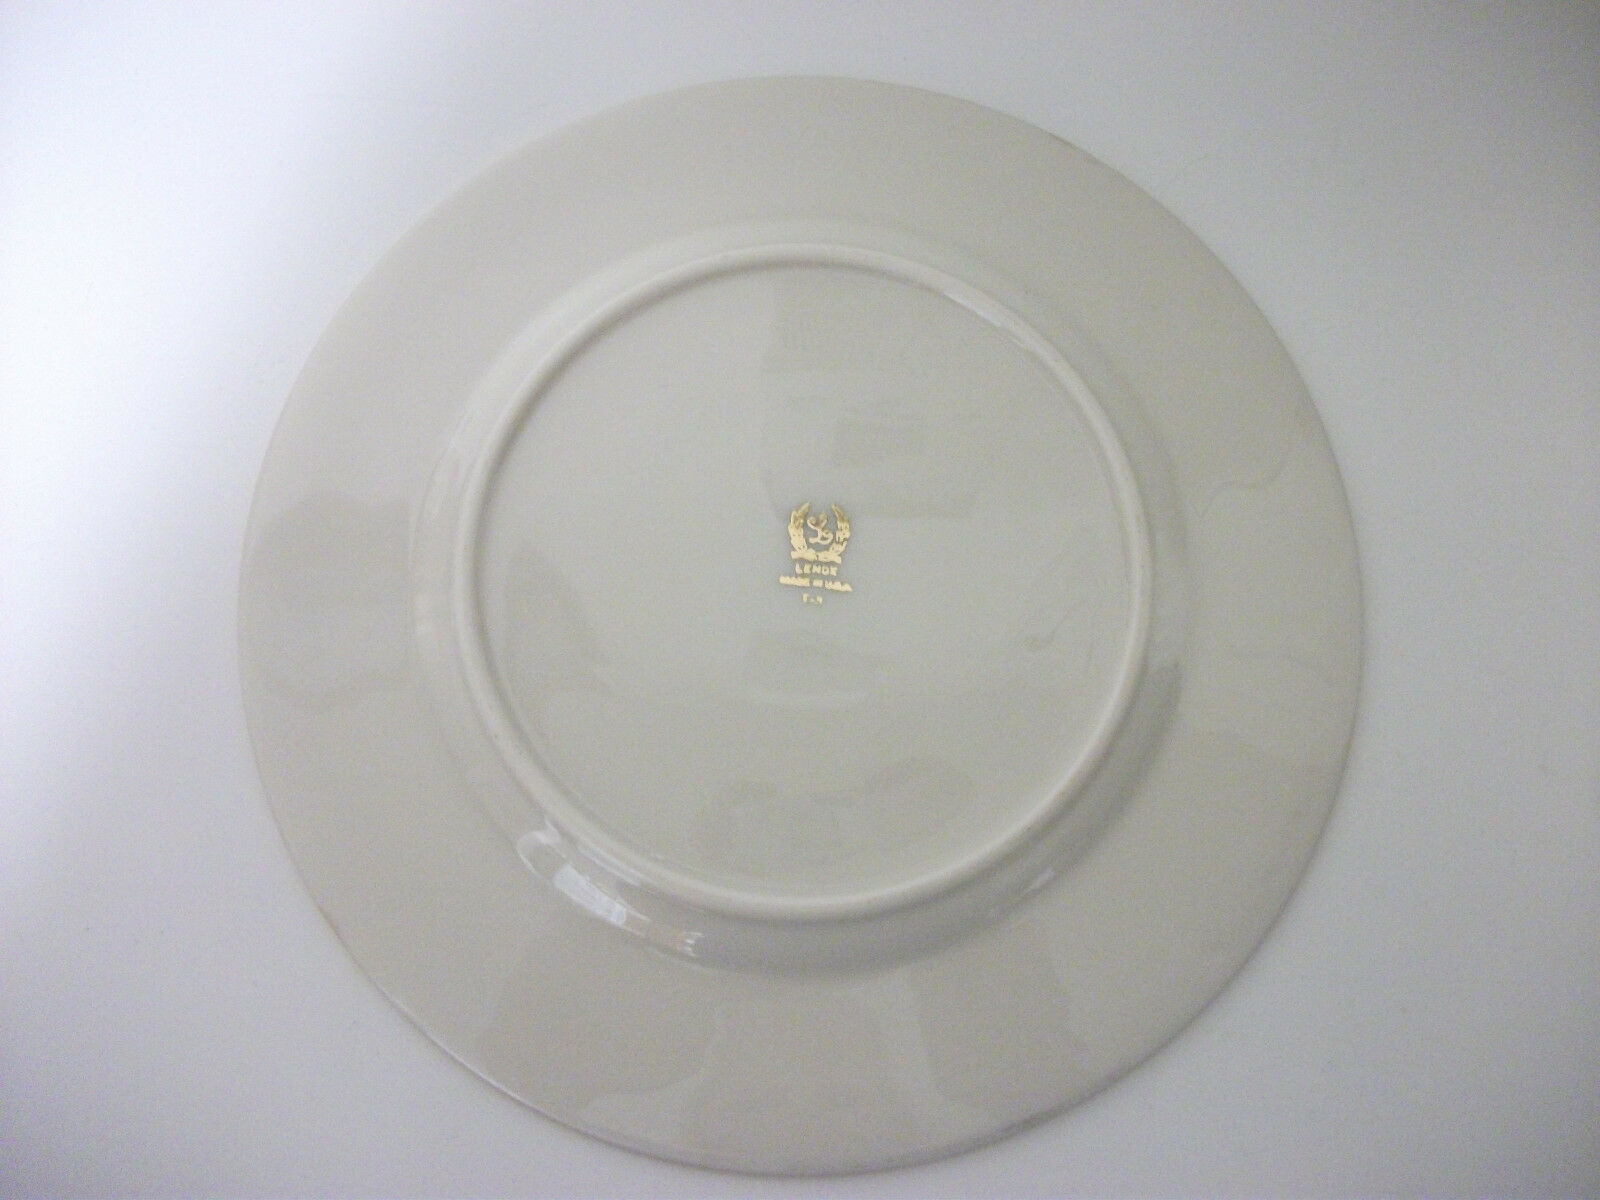 LENOX CHINA FAIRMOUNT T-3 PATTERN SALAD PLATE DISH 8 1/4 INCHES MADE IN USA